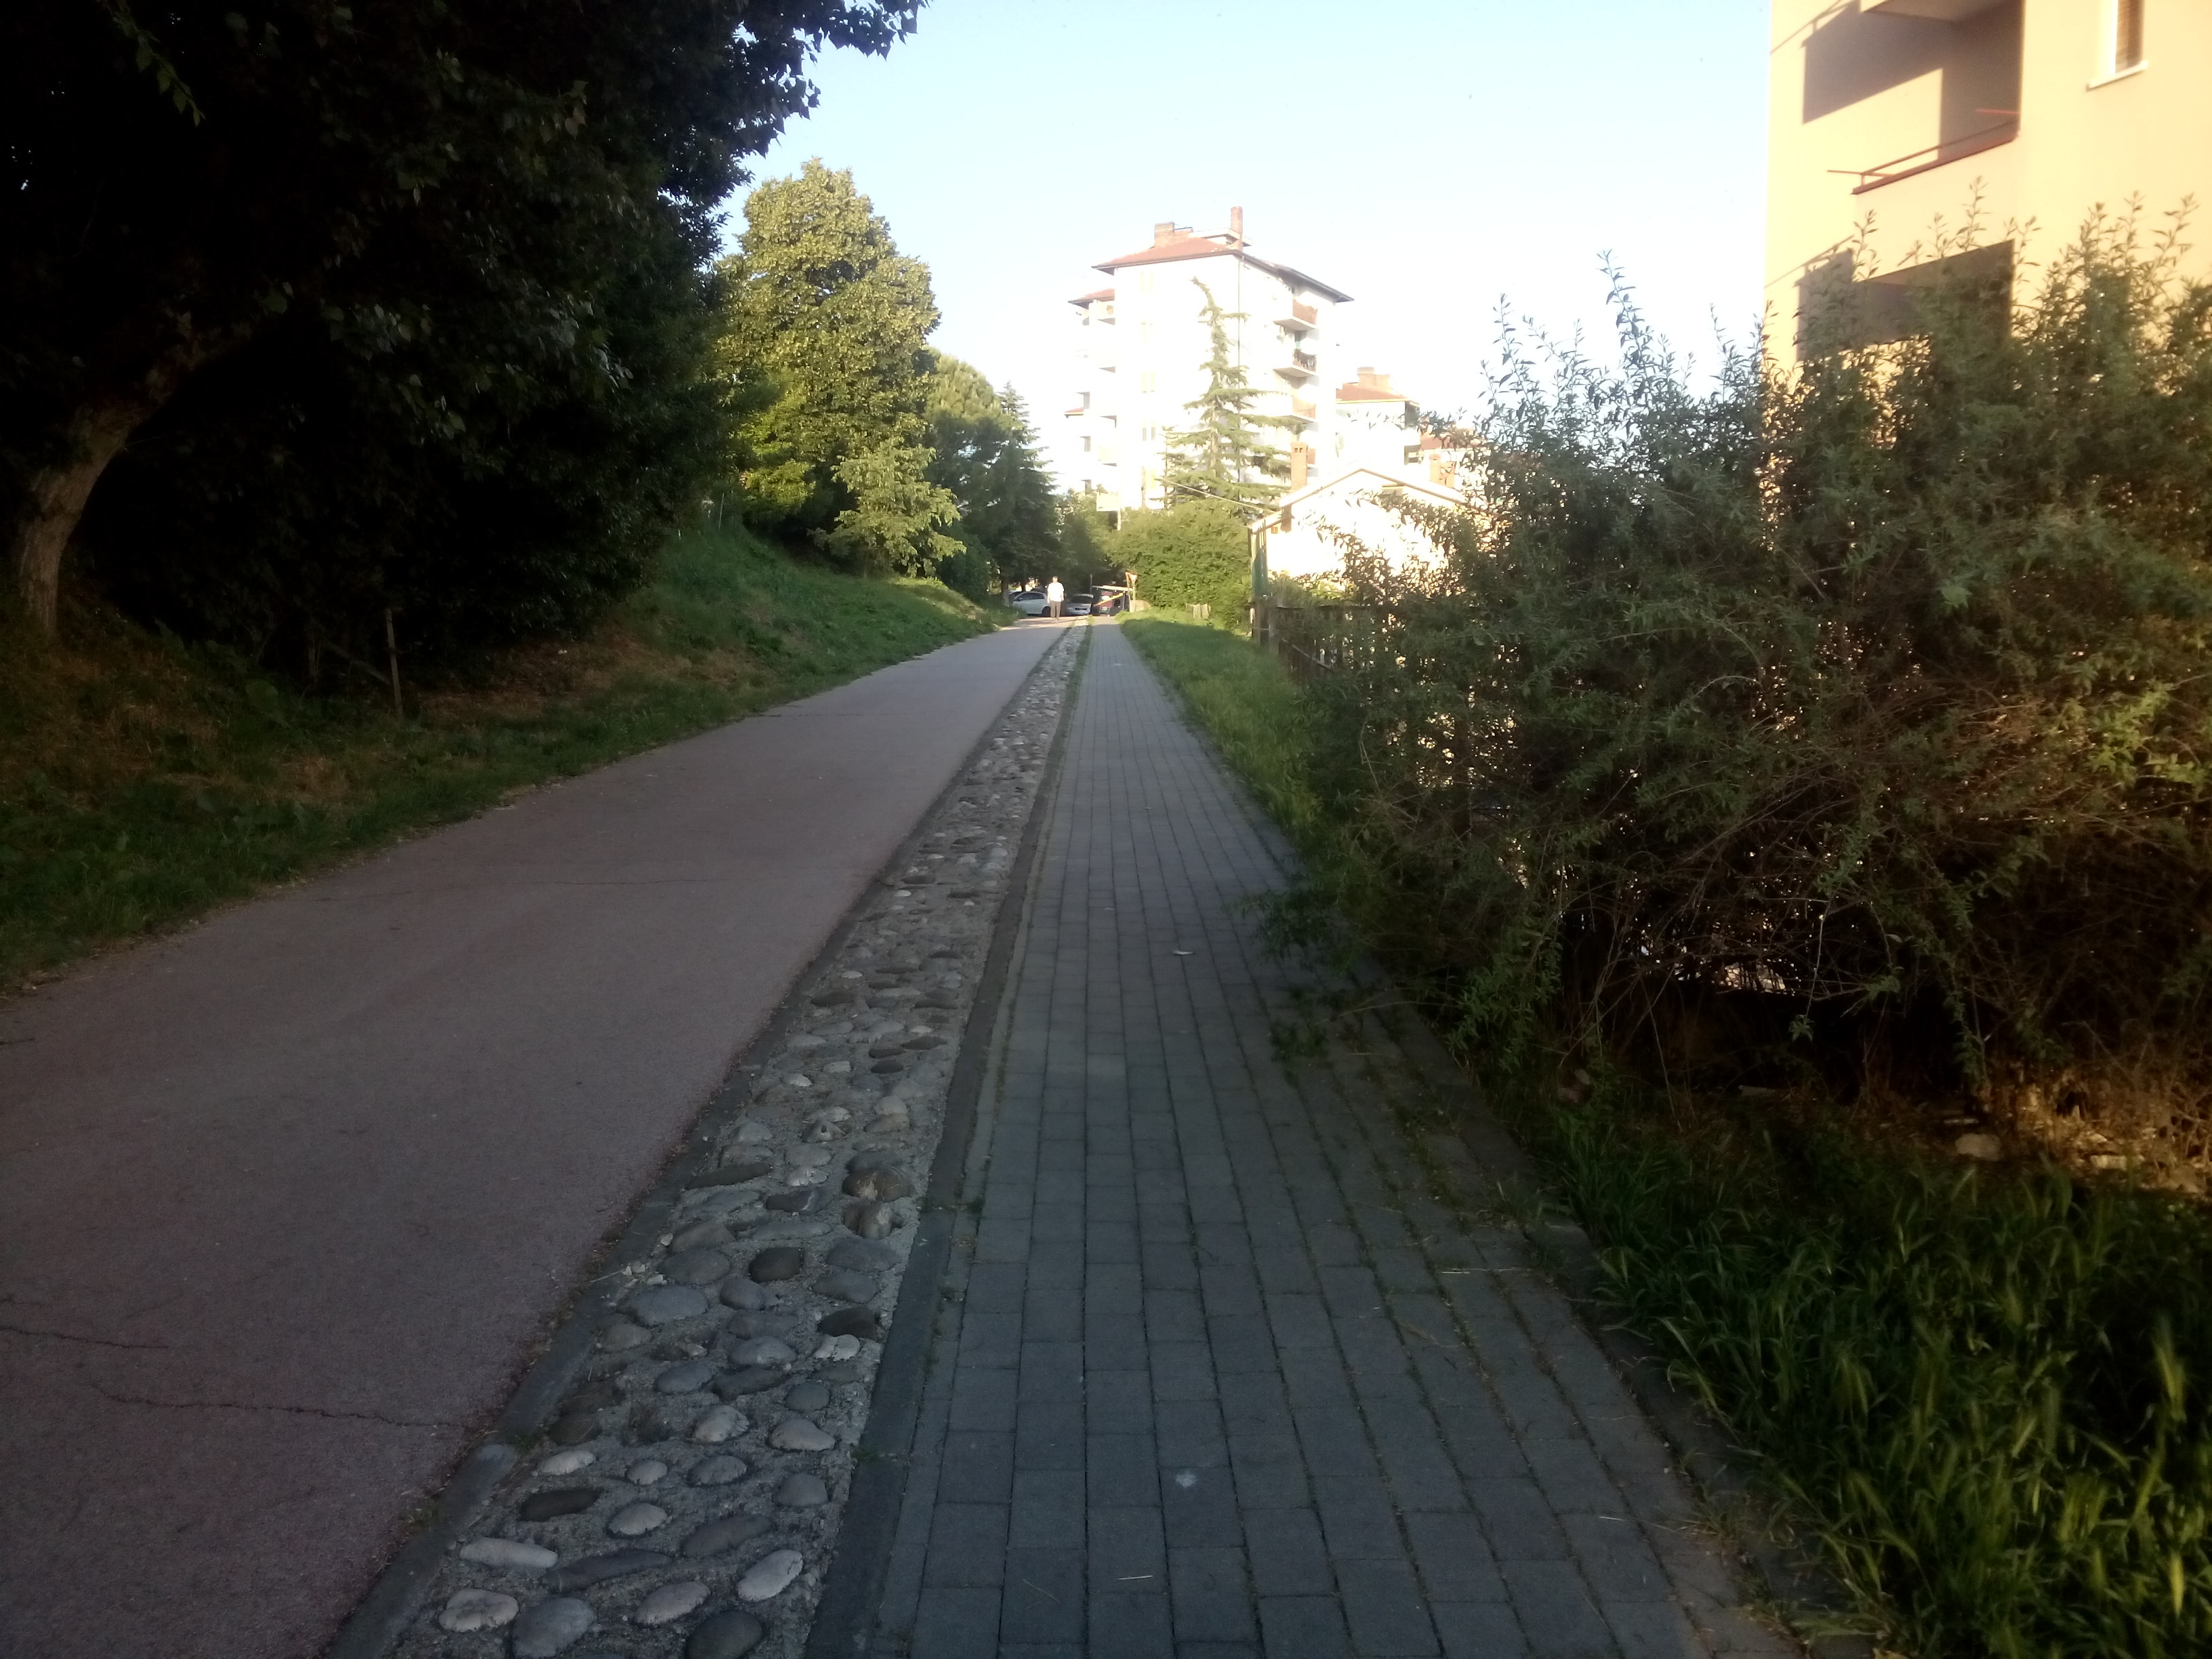 A cyclepath with trees each side and buildings in the distance